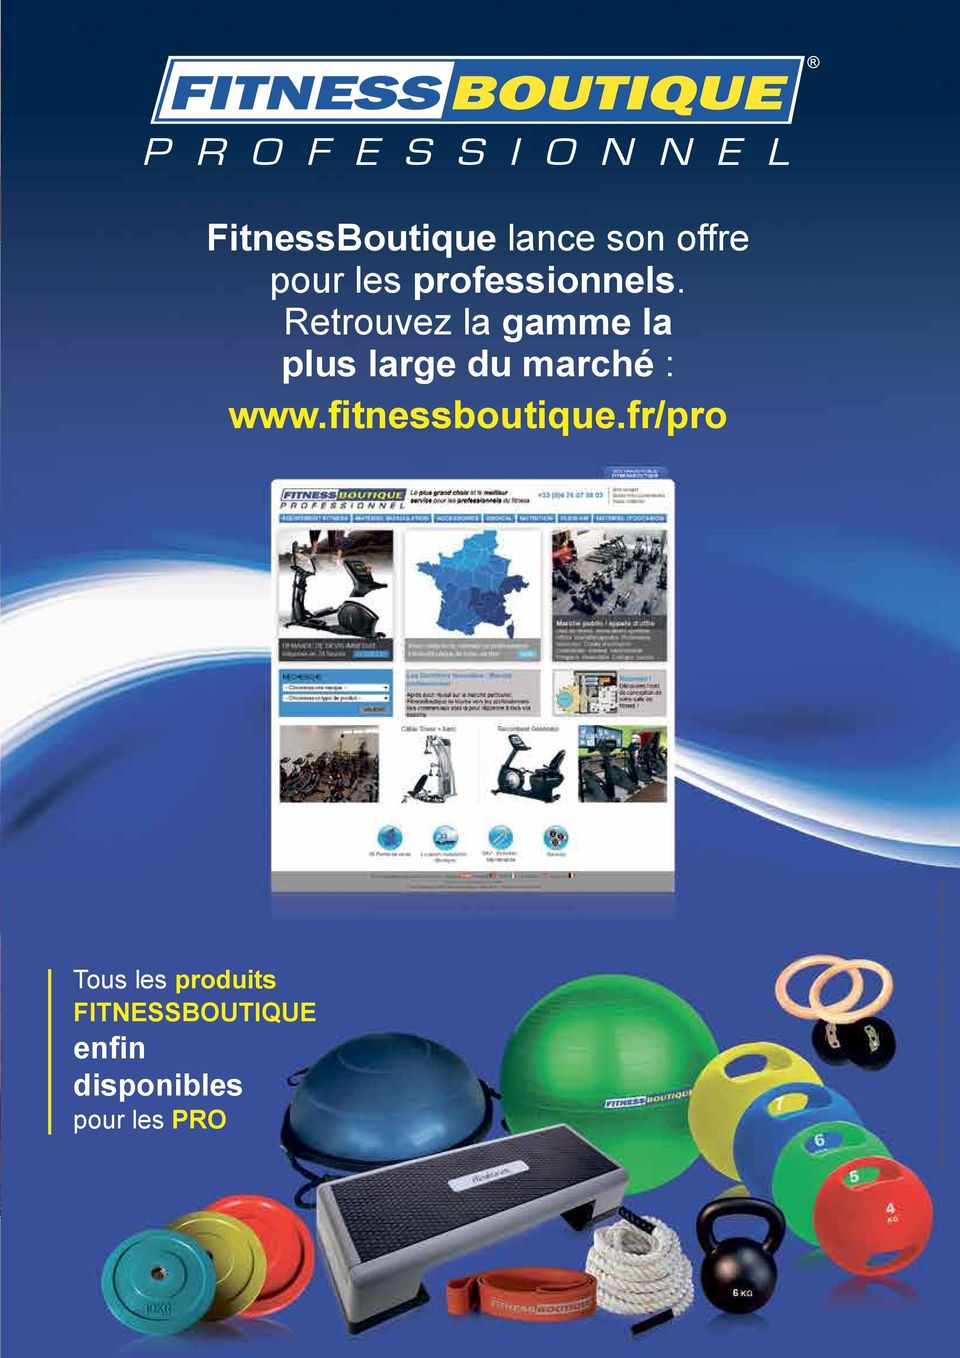 fitnessboutique.